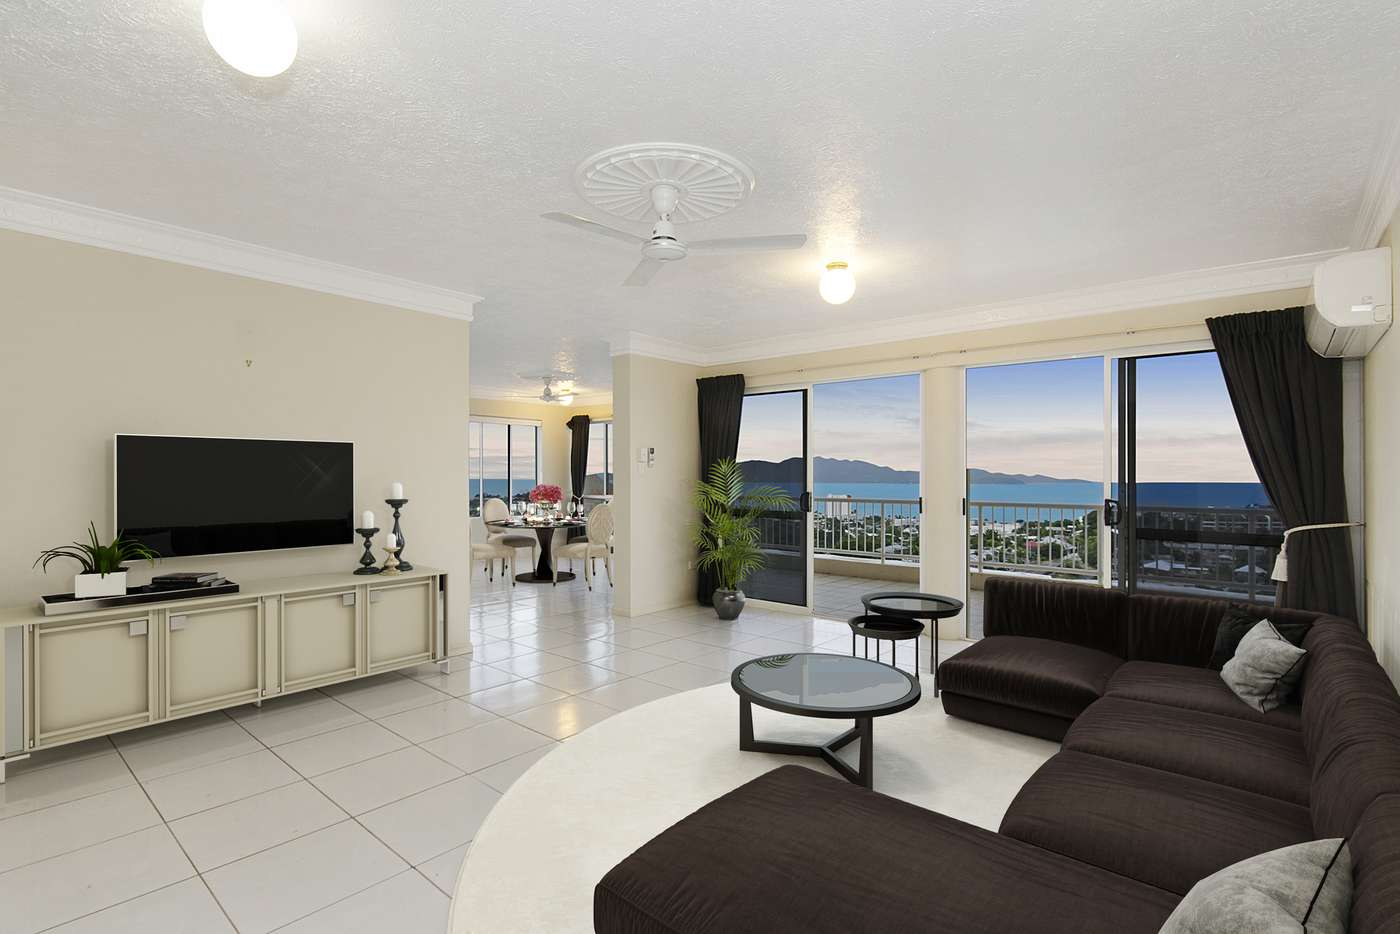 Main view of Homely apartment listing, 3/13 Hillside Crescent, Townsville City QLD 4810